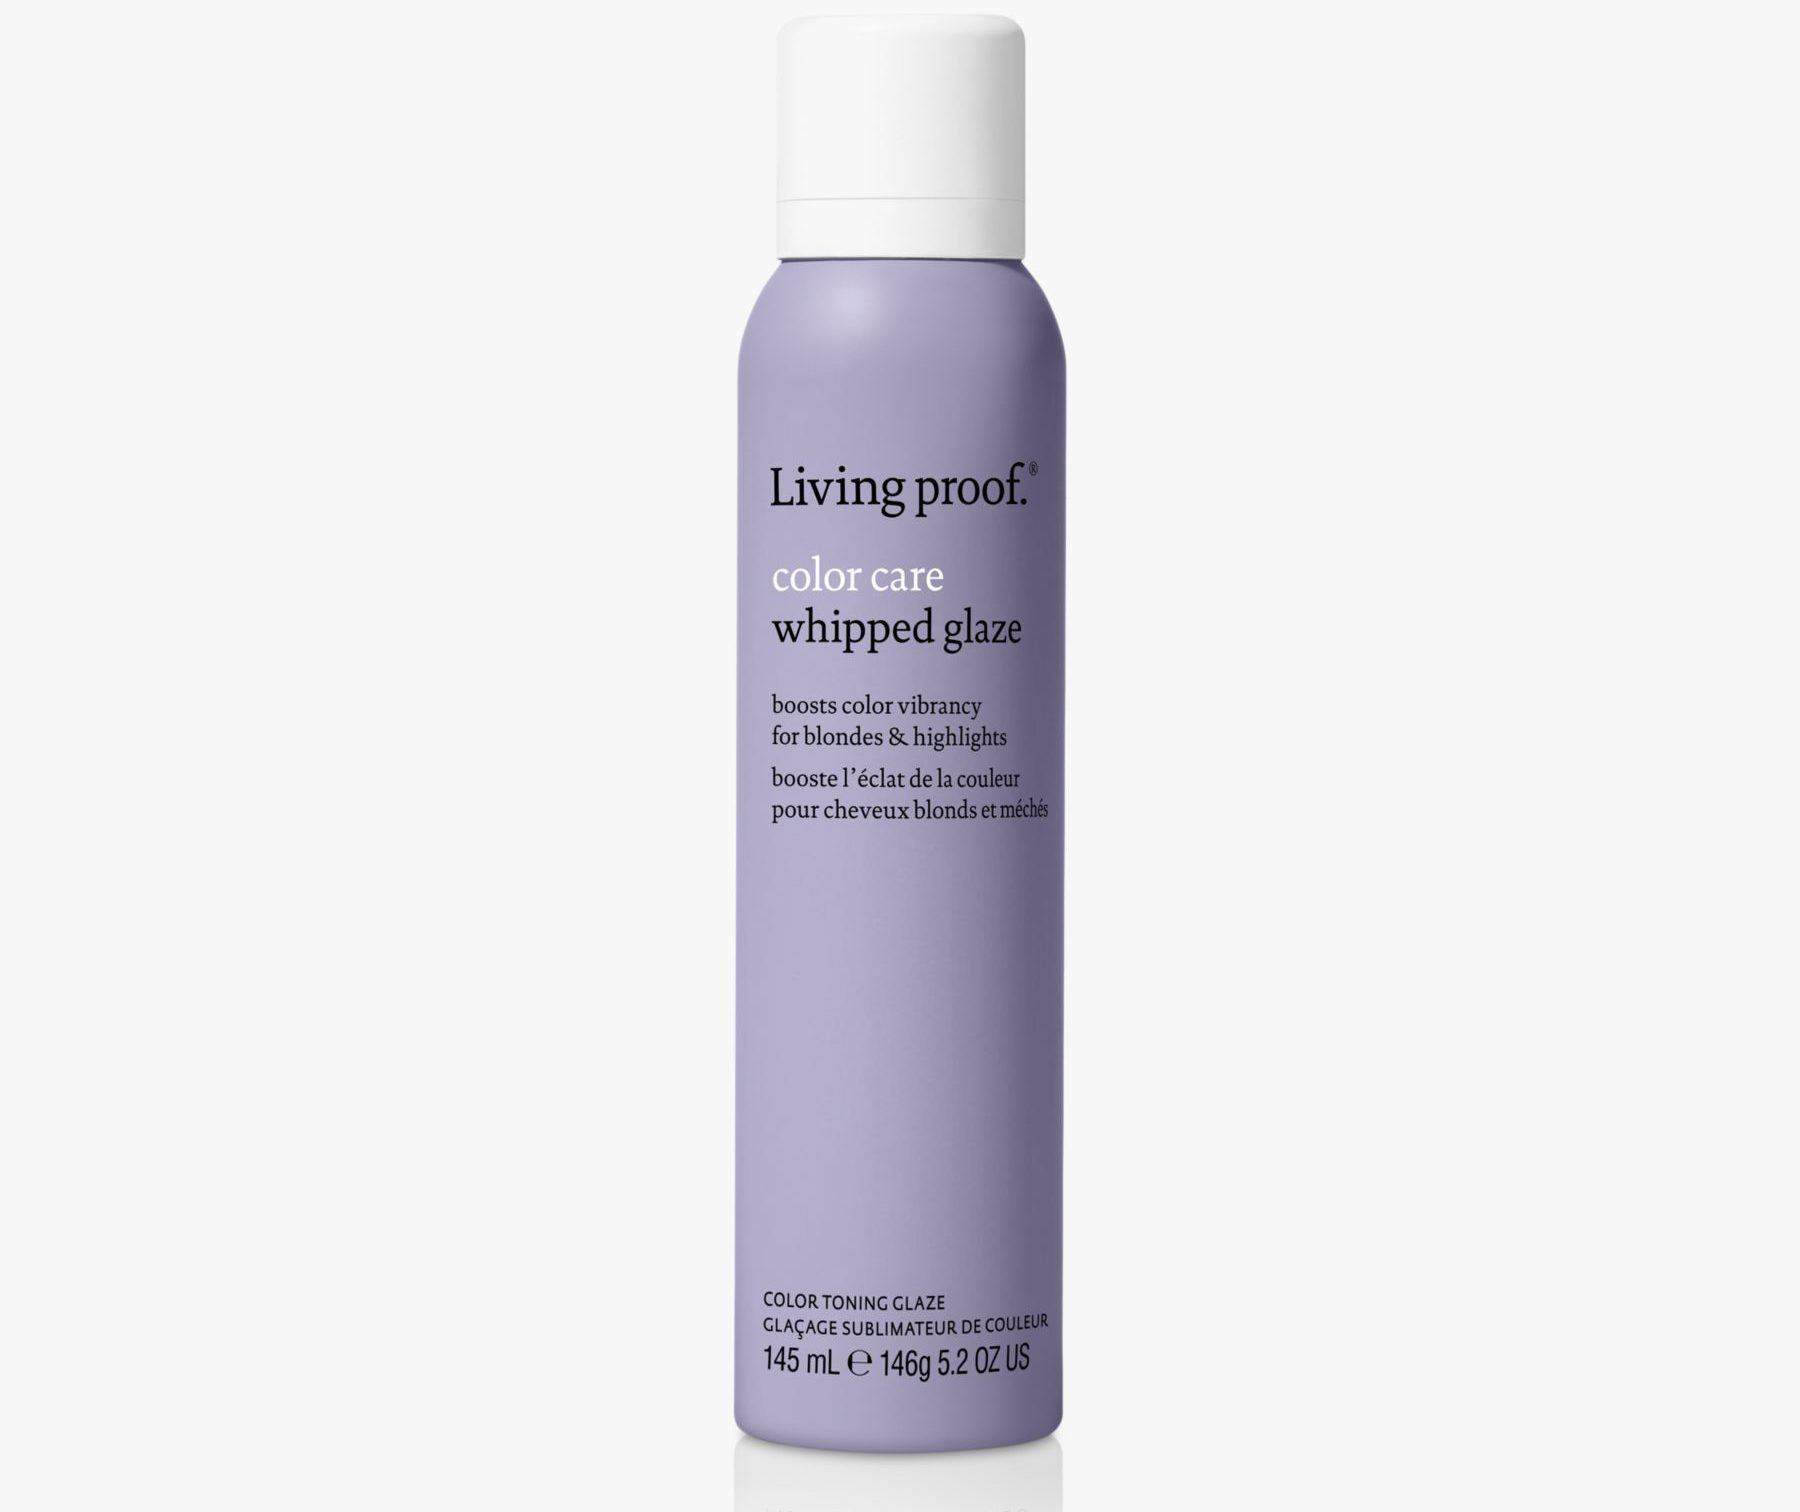 My Celebrity Life – Living Proof Color Care Whipped Glaze